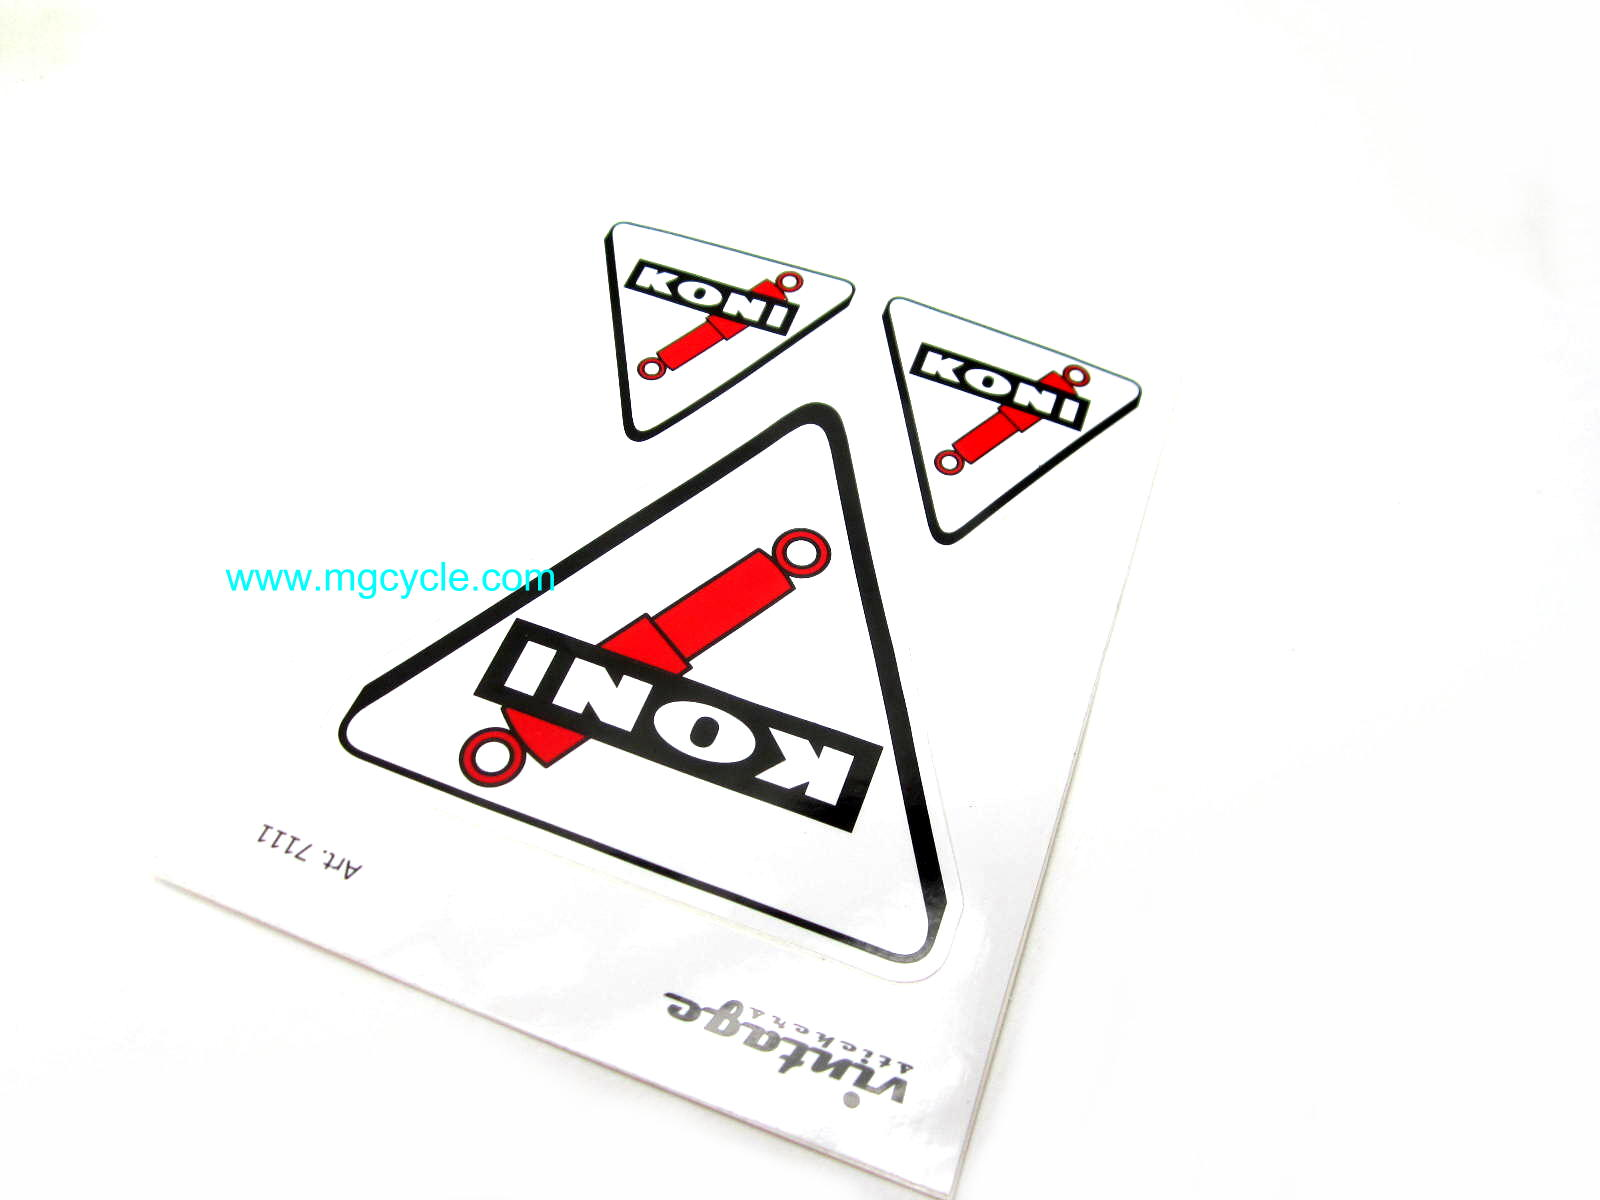 peel and stick KONI stickers, 3 pieces